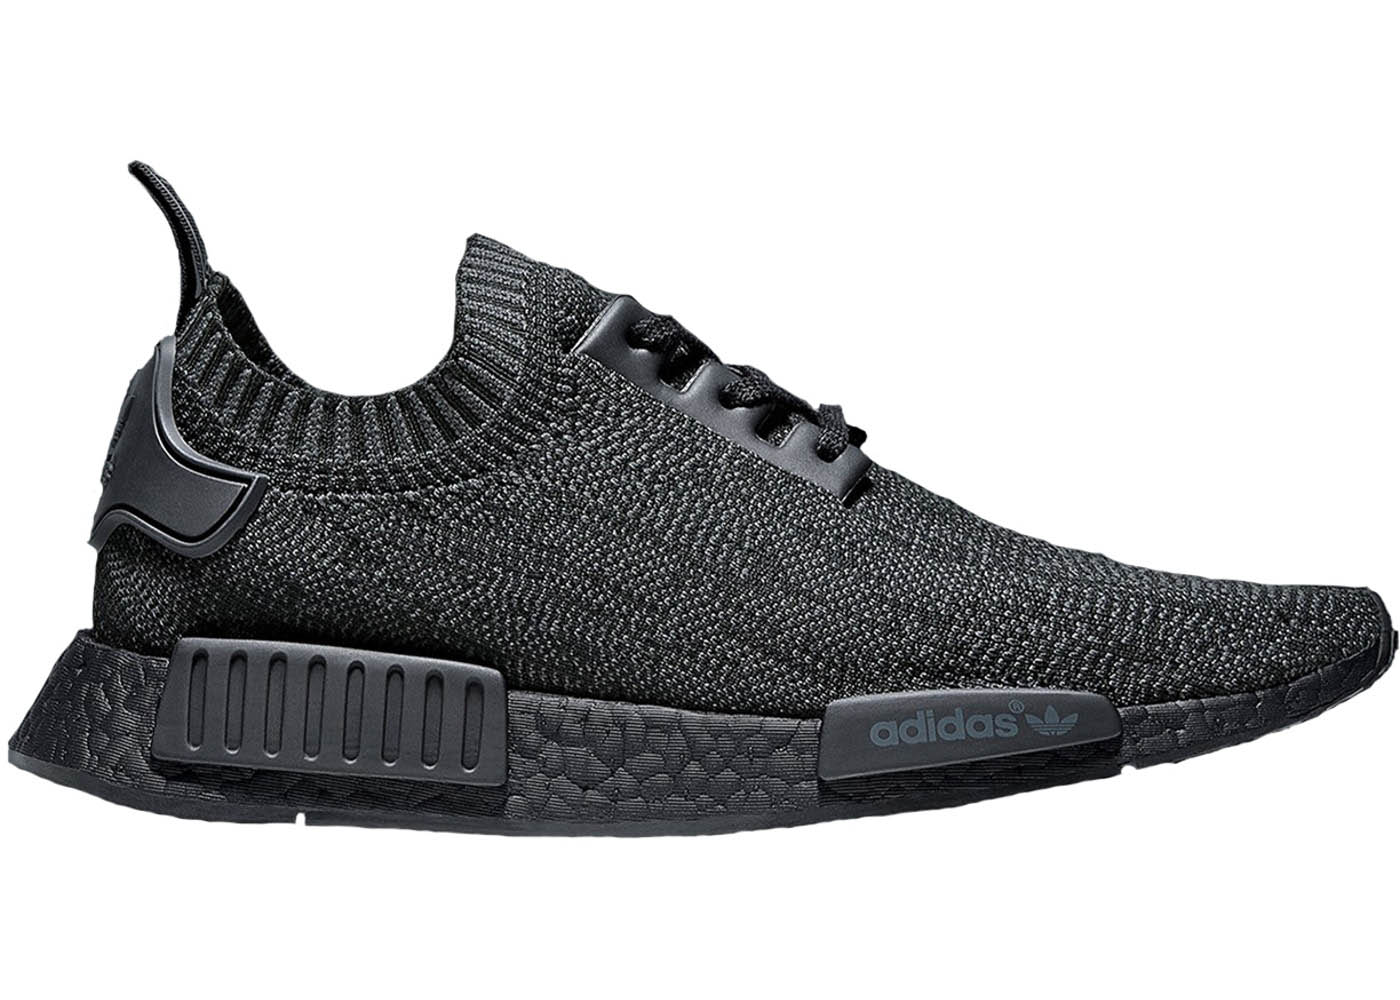 Adidas NMD_R1 Friends and Family